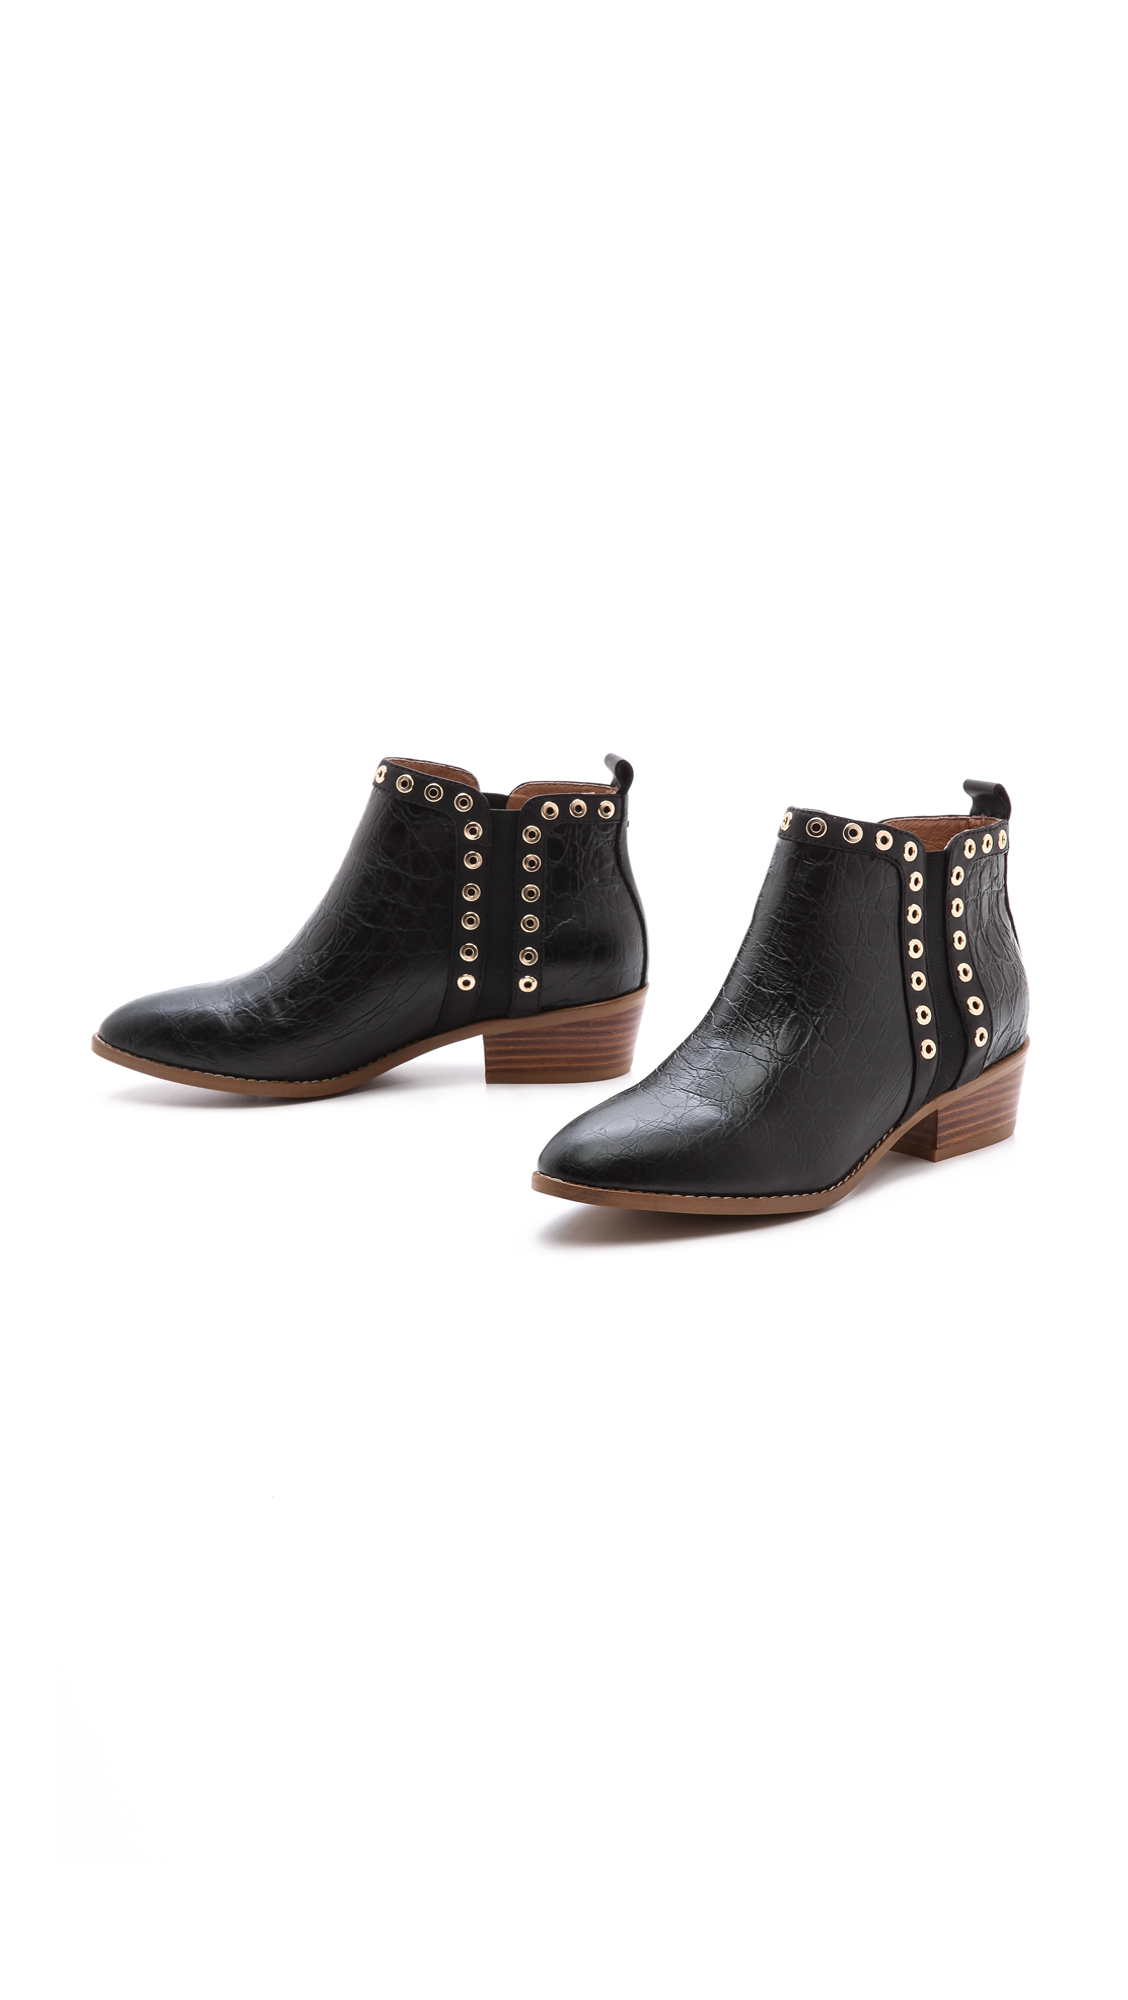 Yosi samra devin booties with grommets